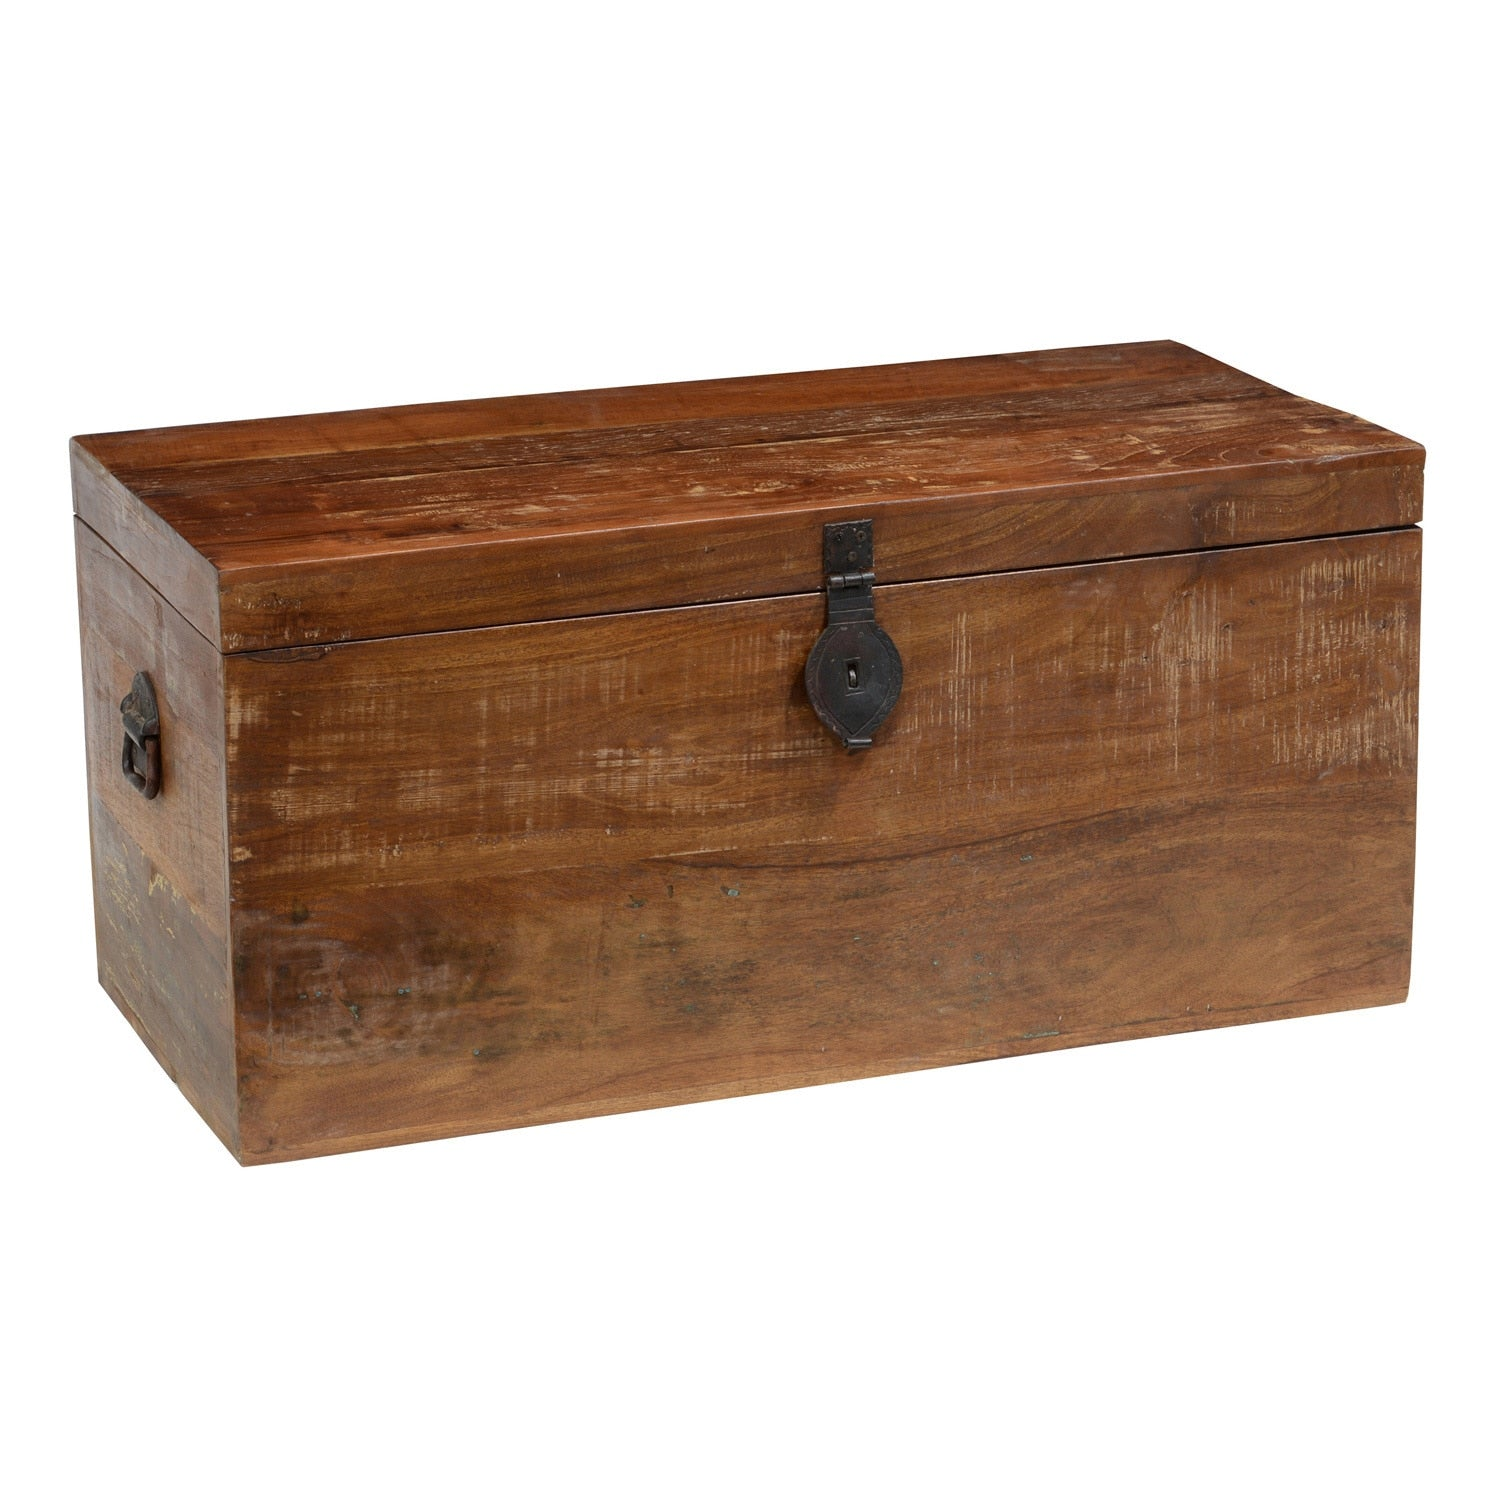 Reclaimed Wood Storage Trunk